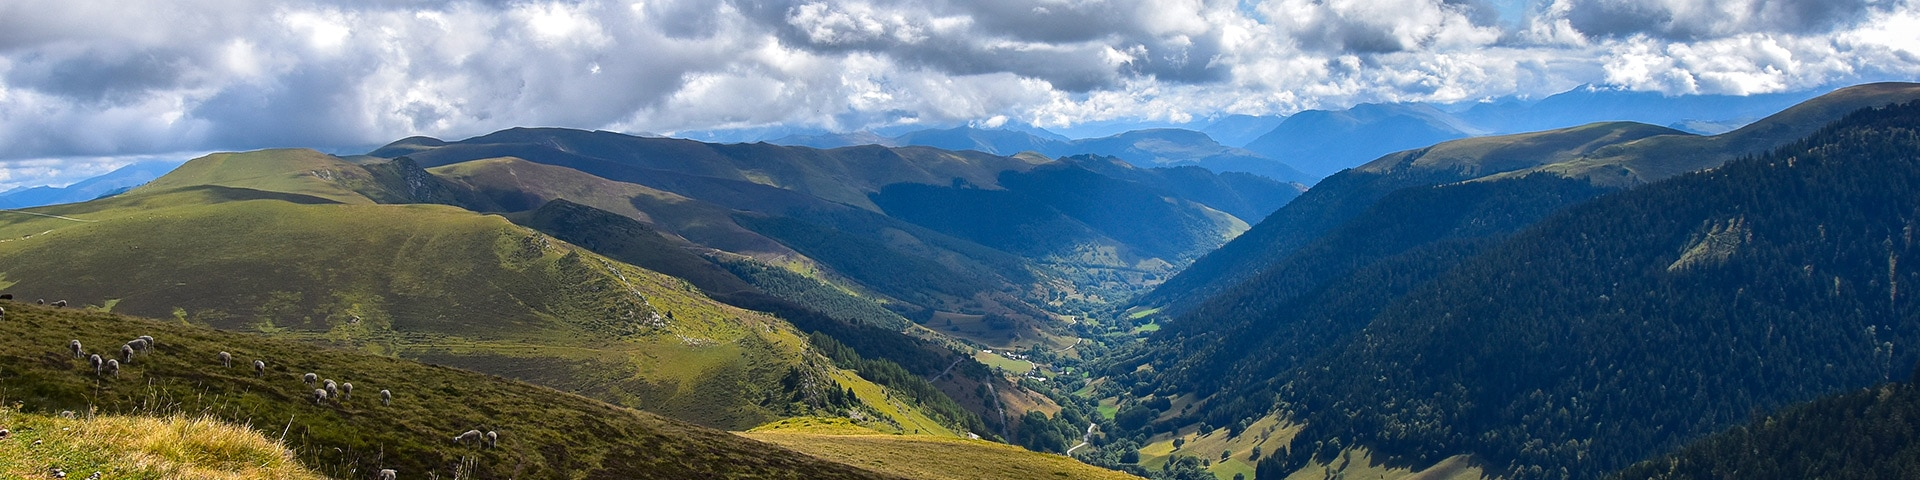 Panoramic views from the Mont Né hike in French Pyrenees